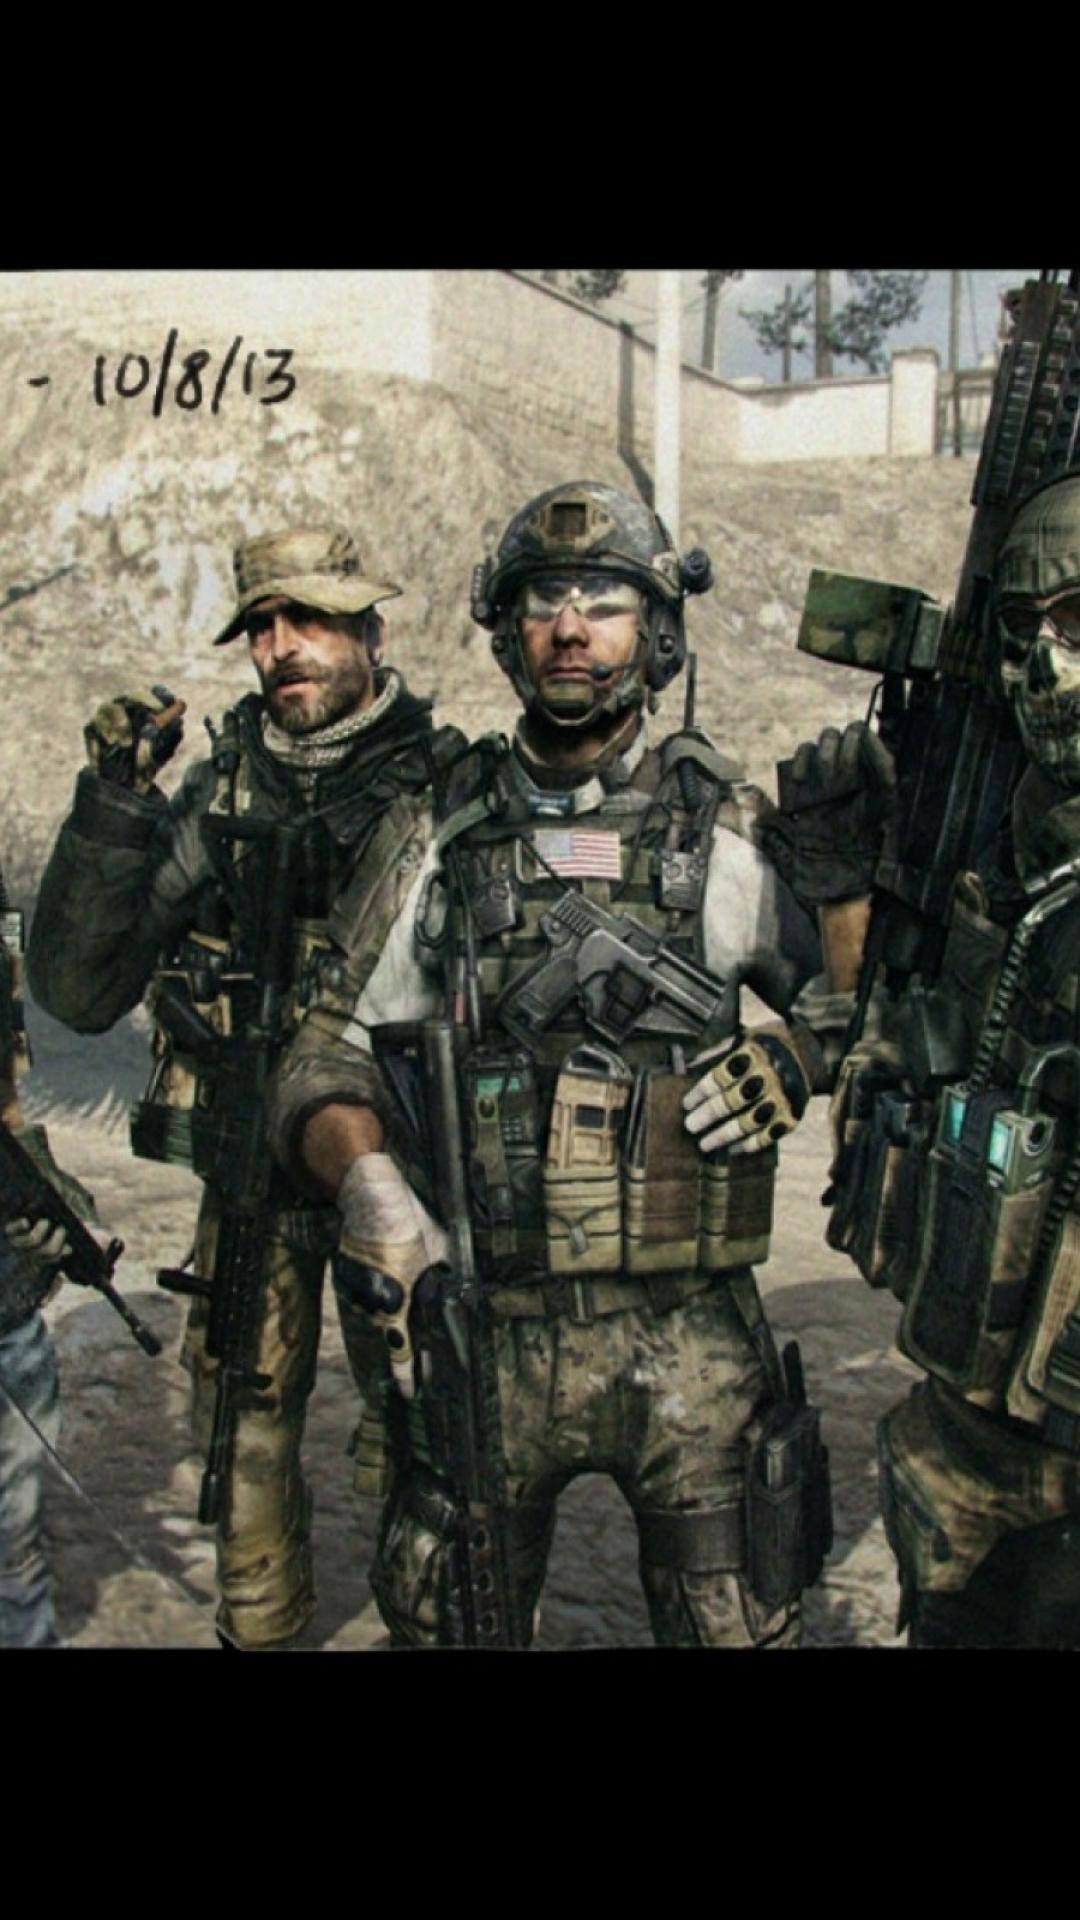 Call of Duty Modern Warfare 3 Wallpapers - Top Free Call of